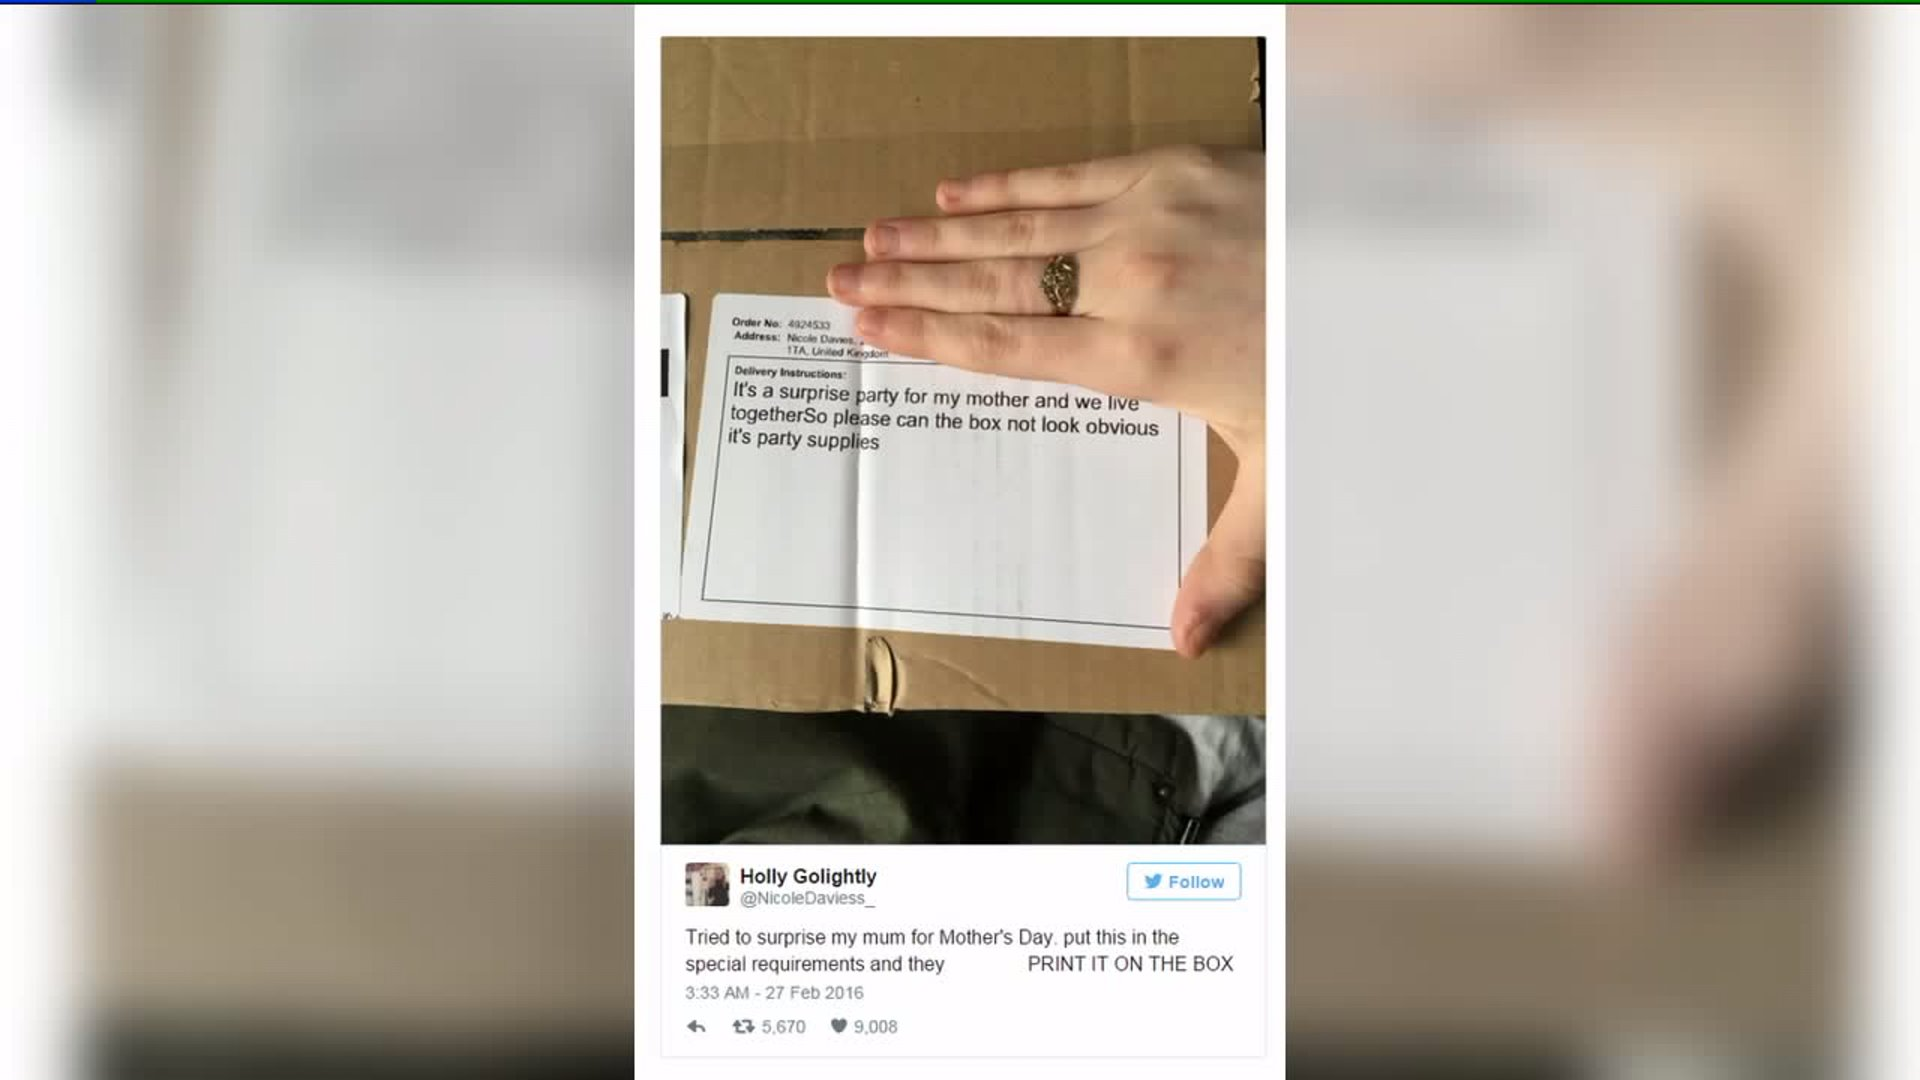 Woman's Perfect Mother's Day Surprise Ruined by Delivery Note